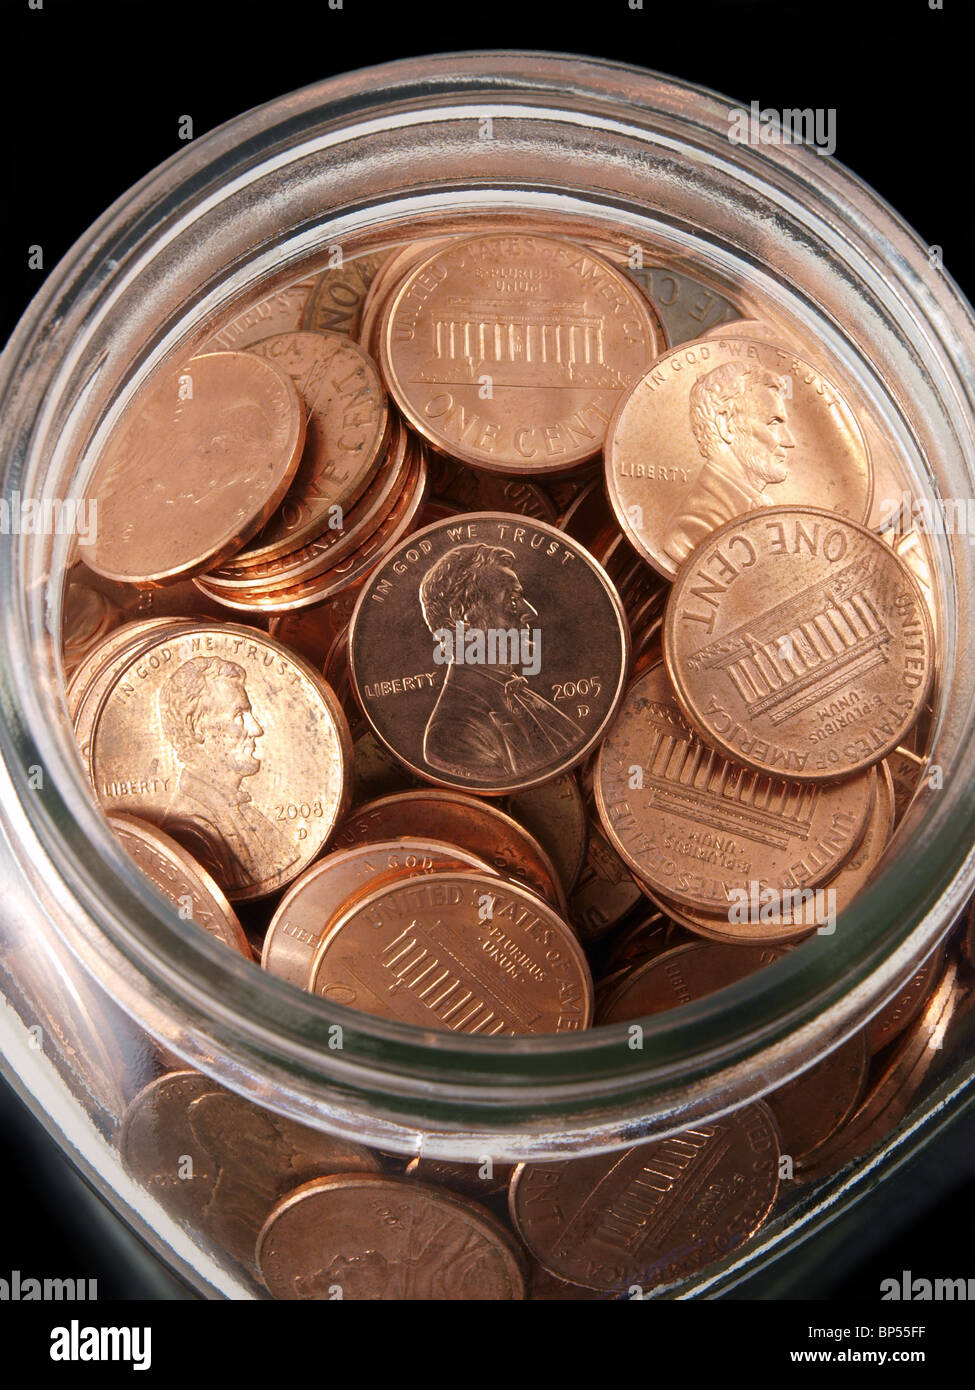 Tight shot of shinny pennies in a vintage jar. - Stock Image